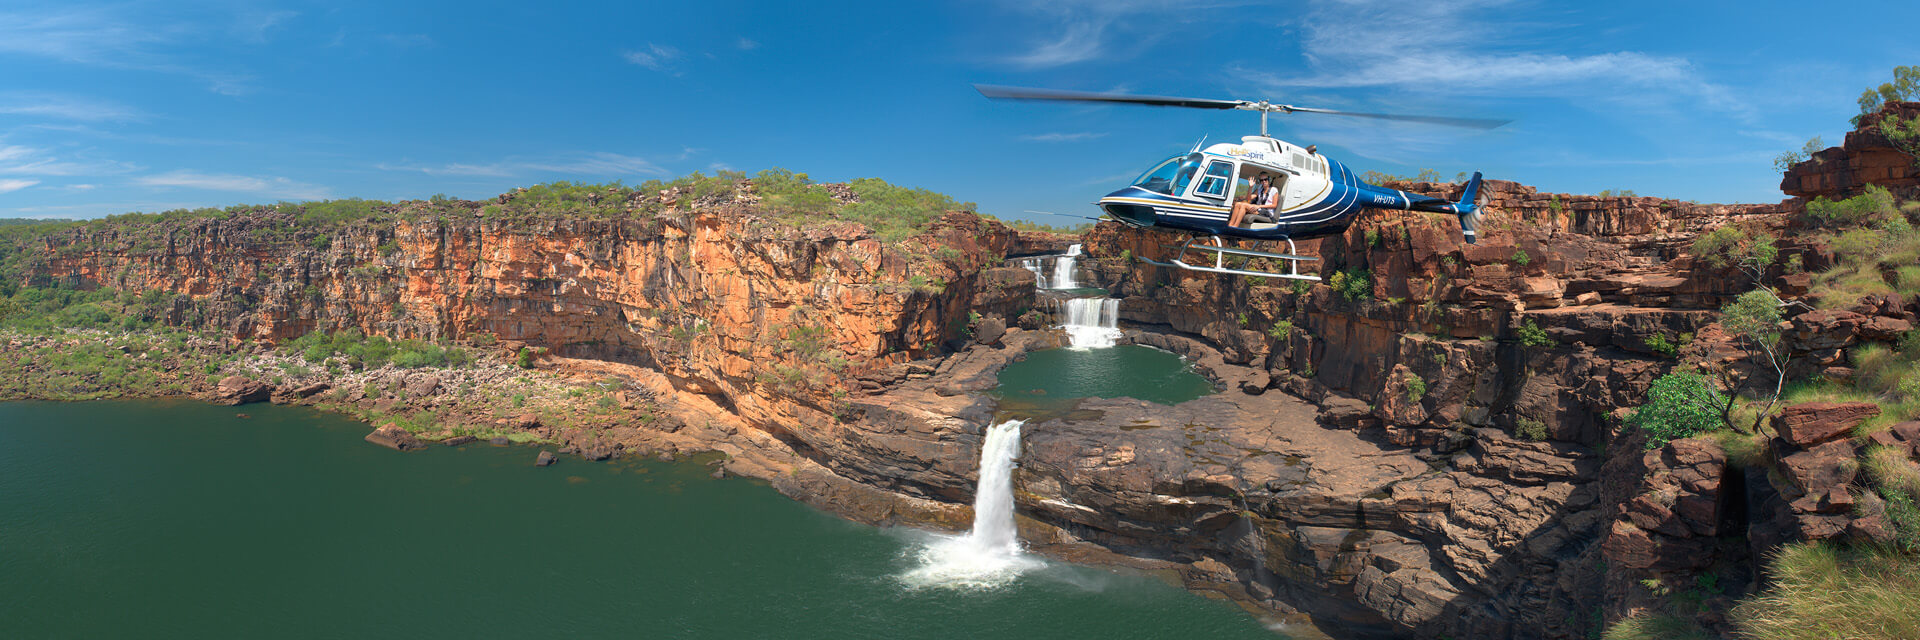 Helicopter Adventure Tours